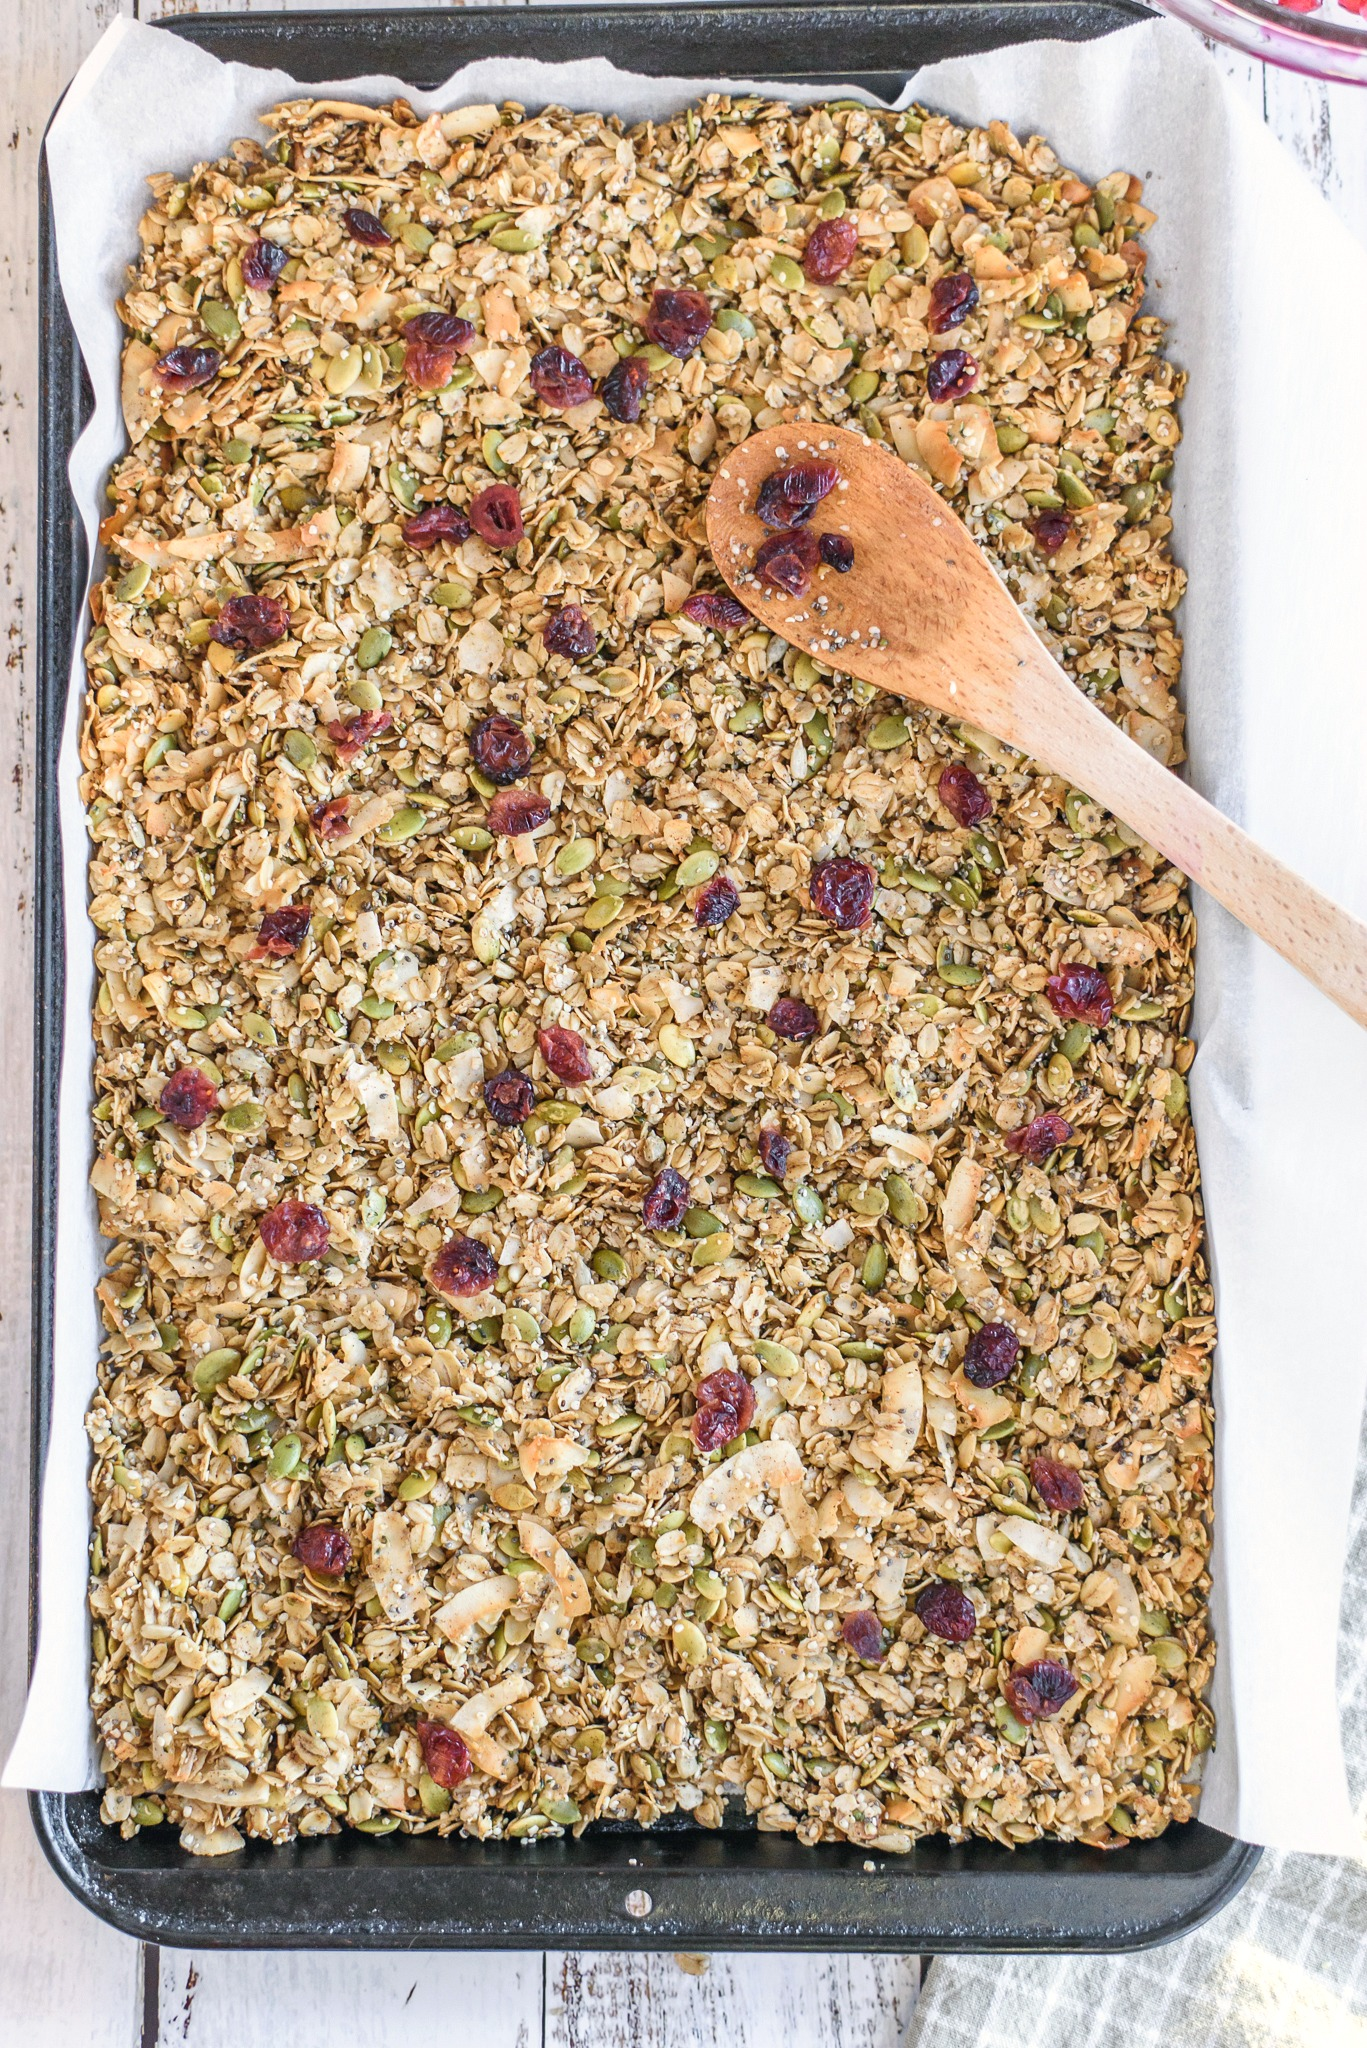 Homemade Nut Free Granola Recipes